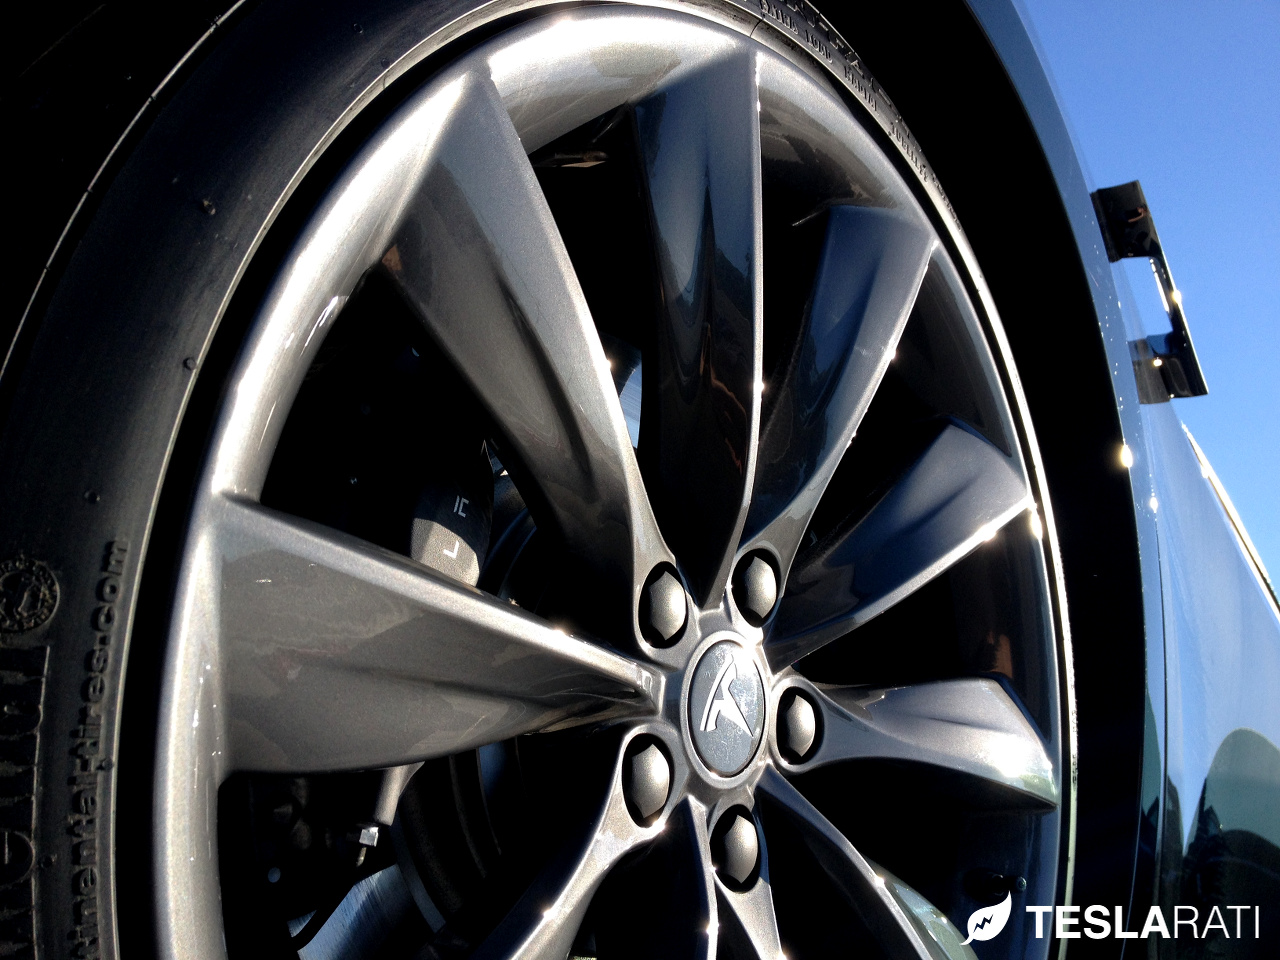 Tesla Model S 21″ Turbine Wheel Tire